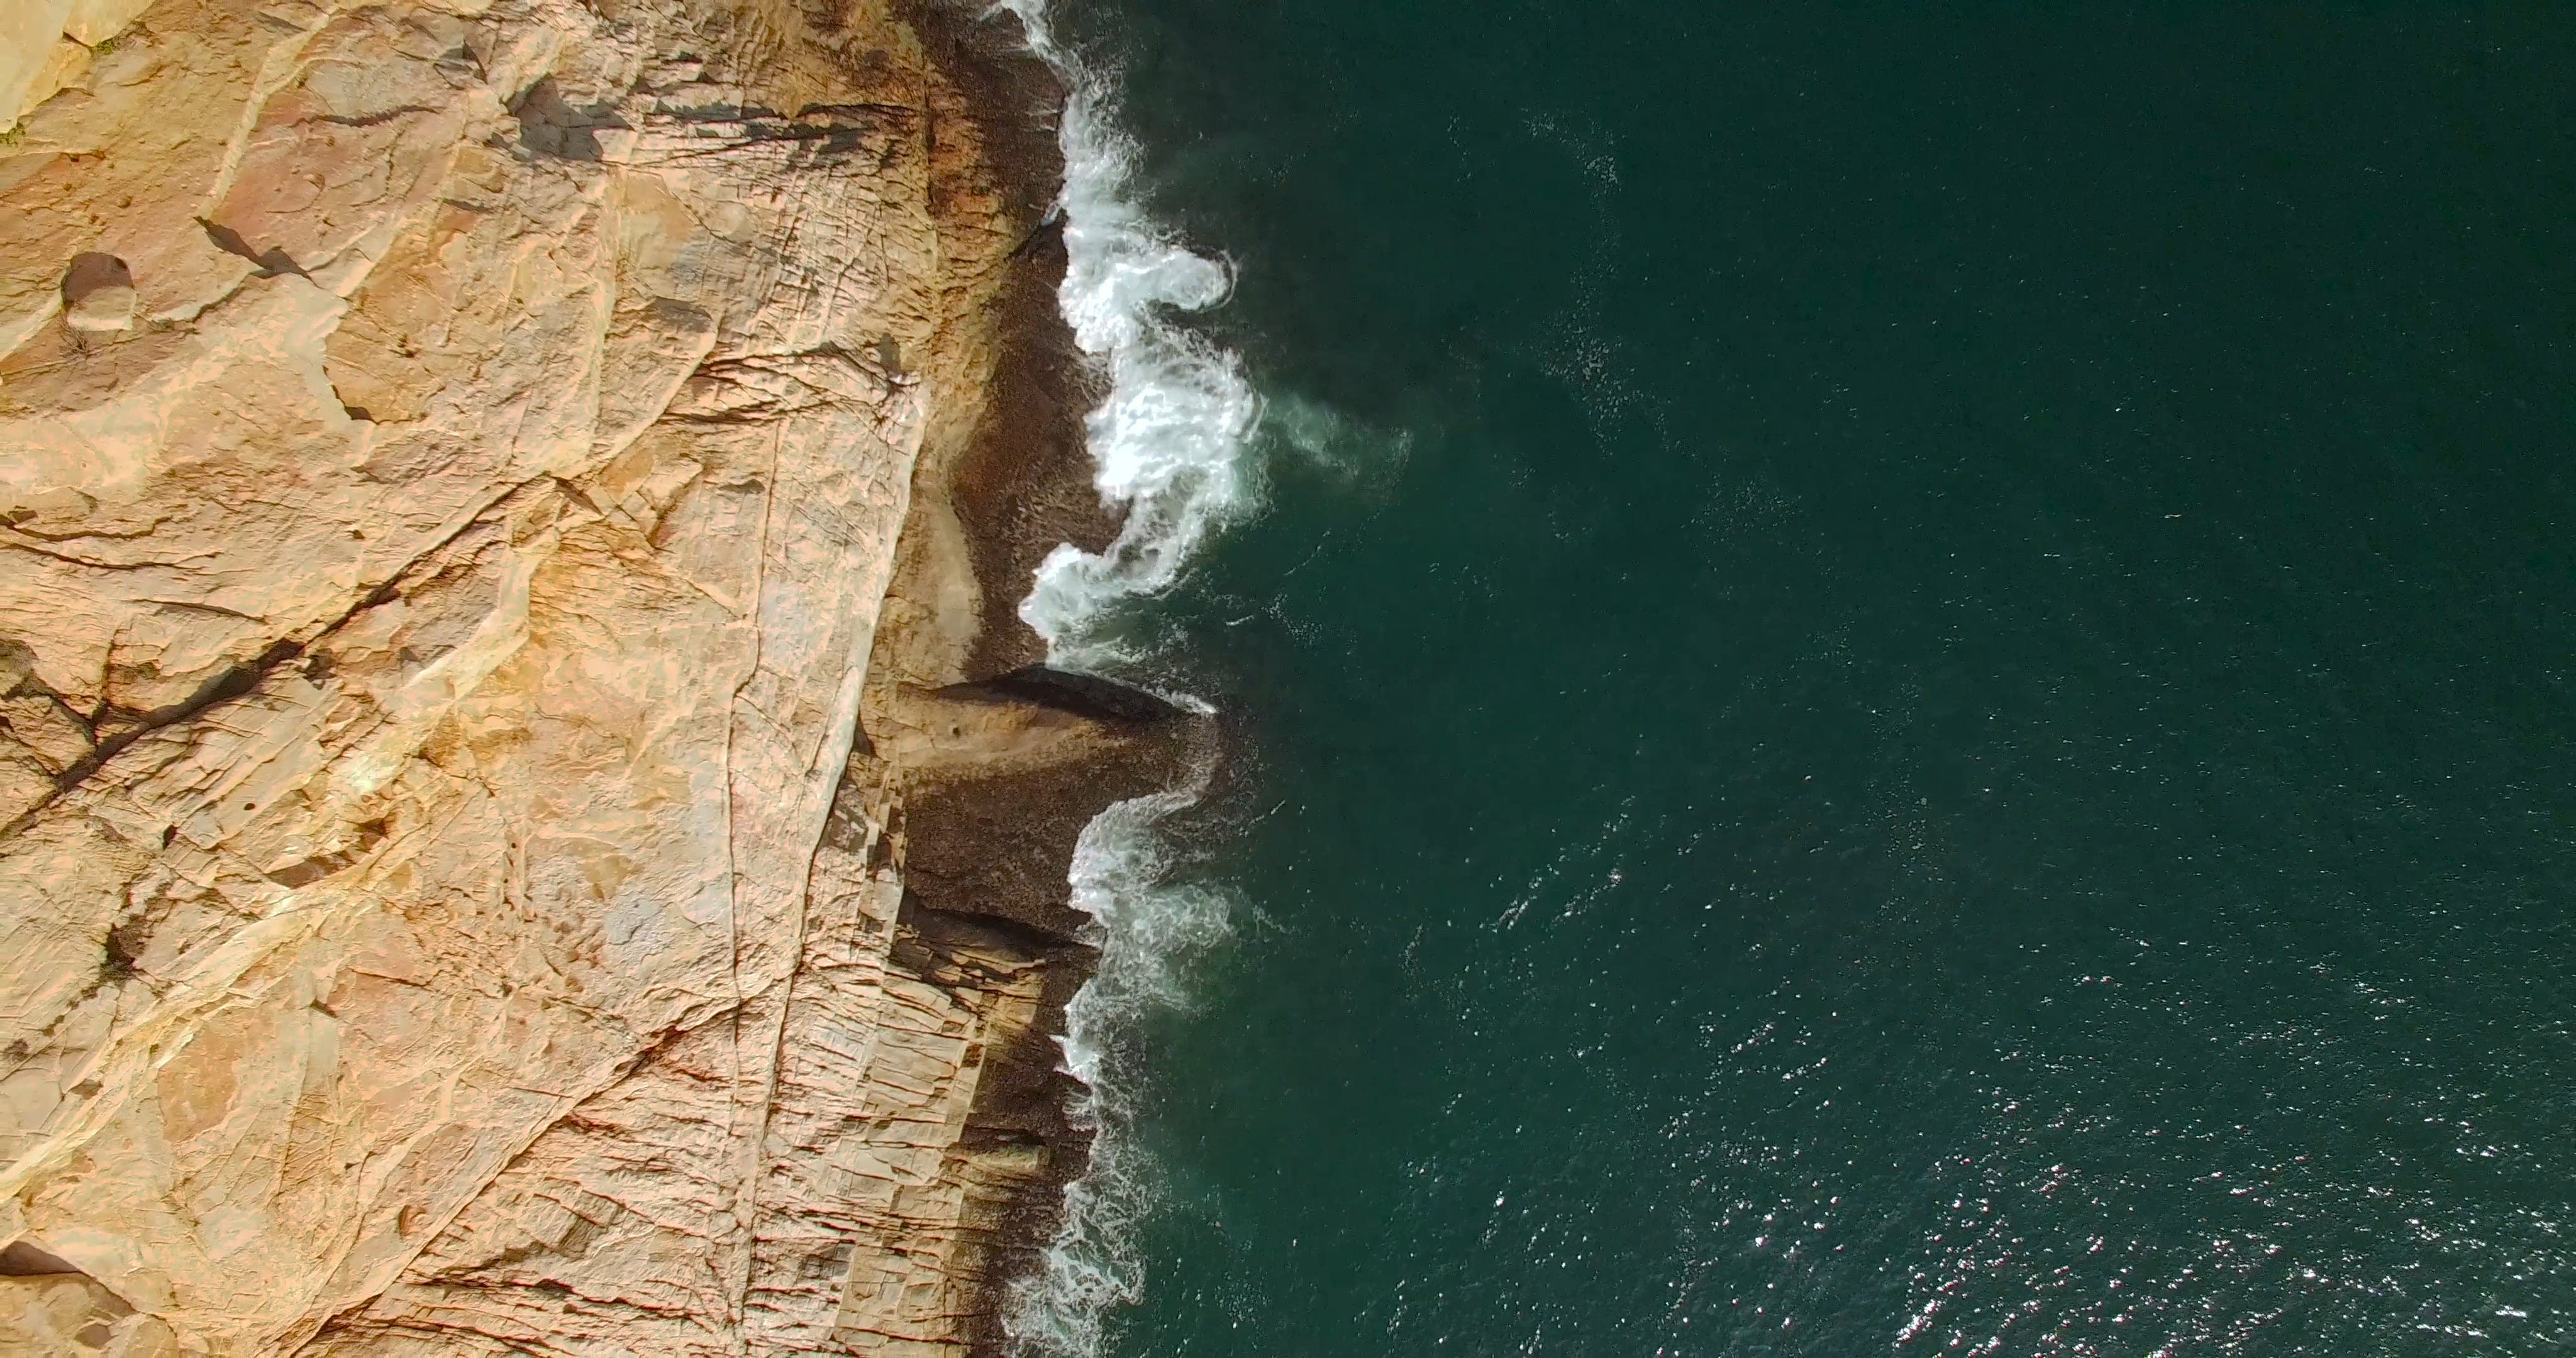 Aerial View of a Cliff